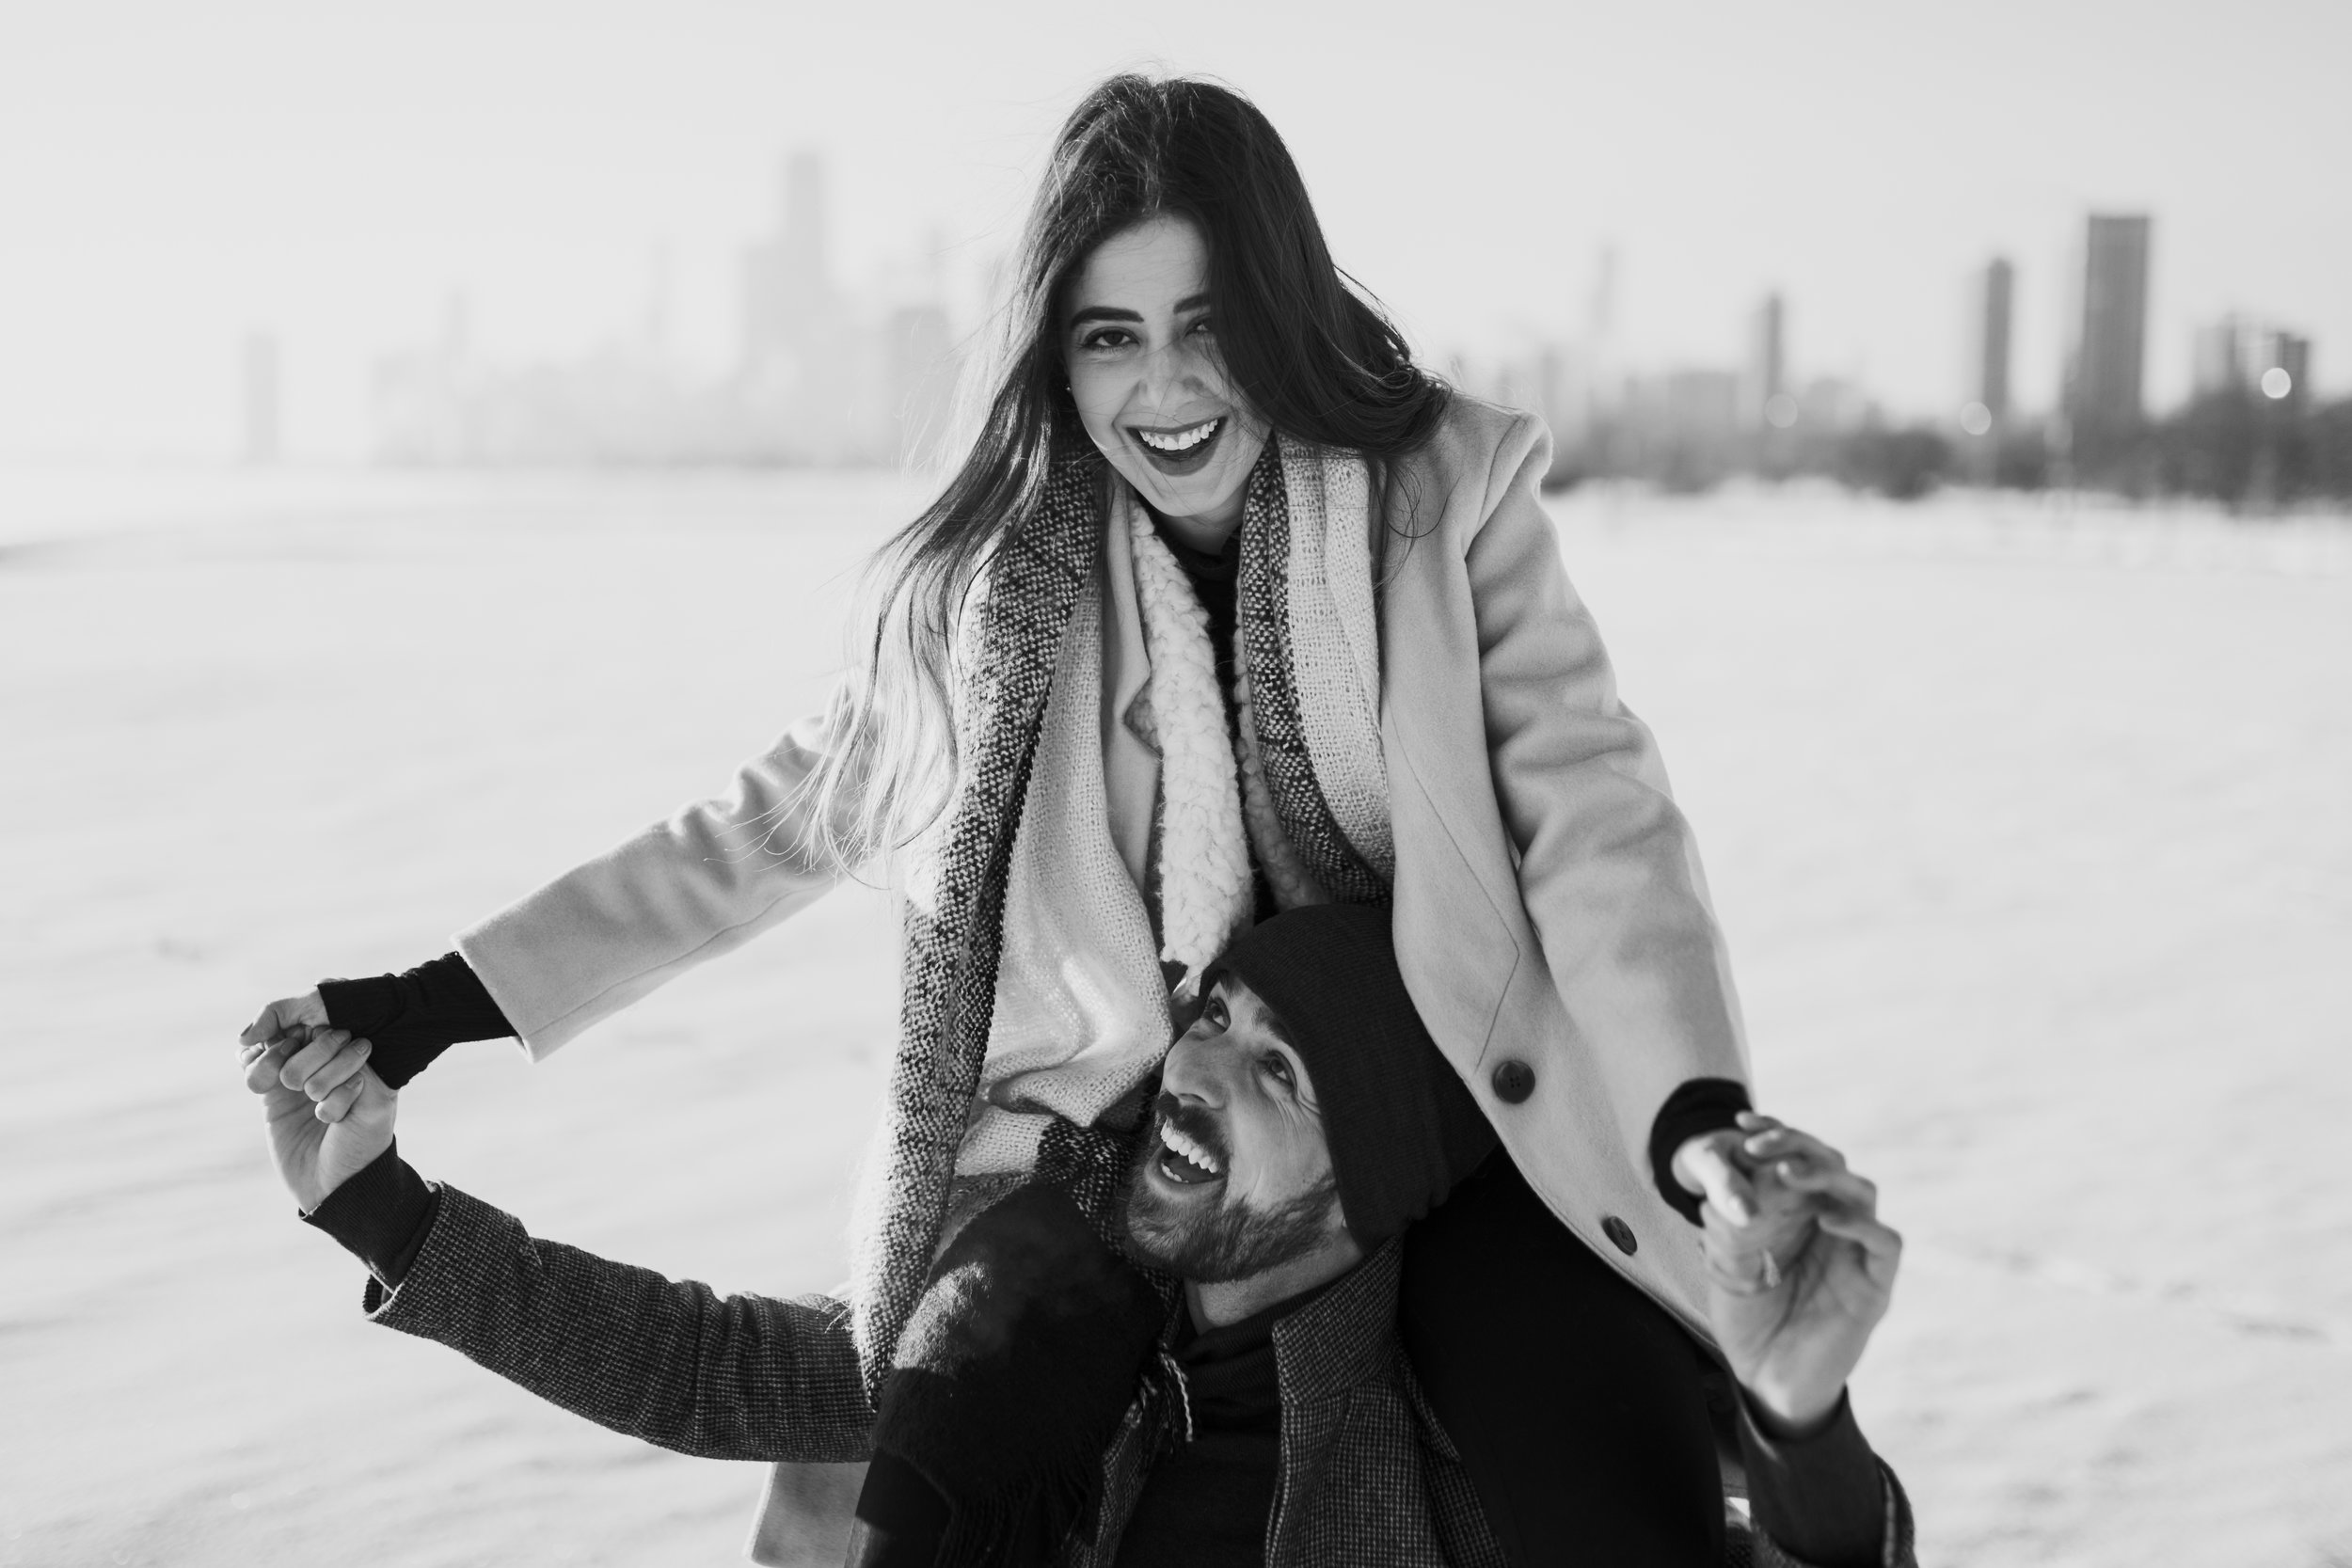 Chicago Winter Sunrise Engagement Photoshoot by Kerri Carlquist Photography